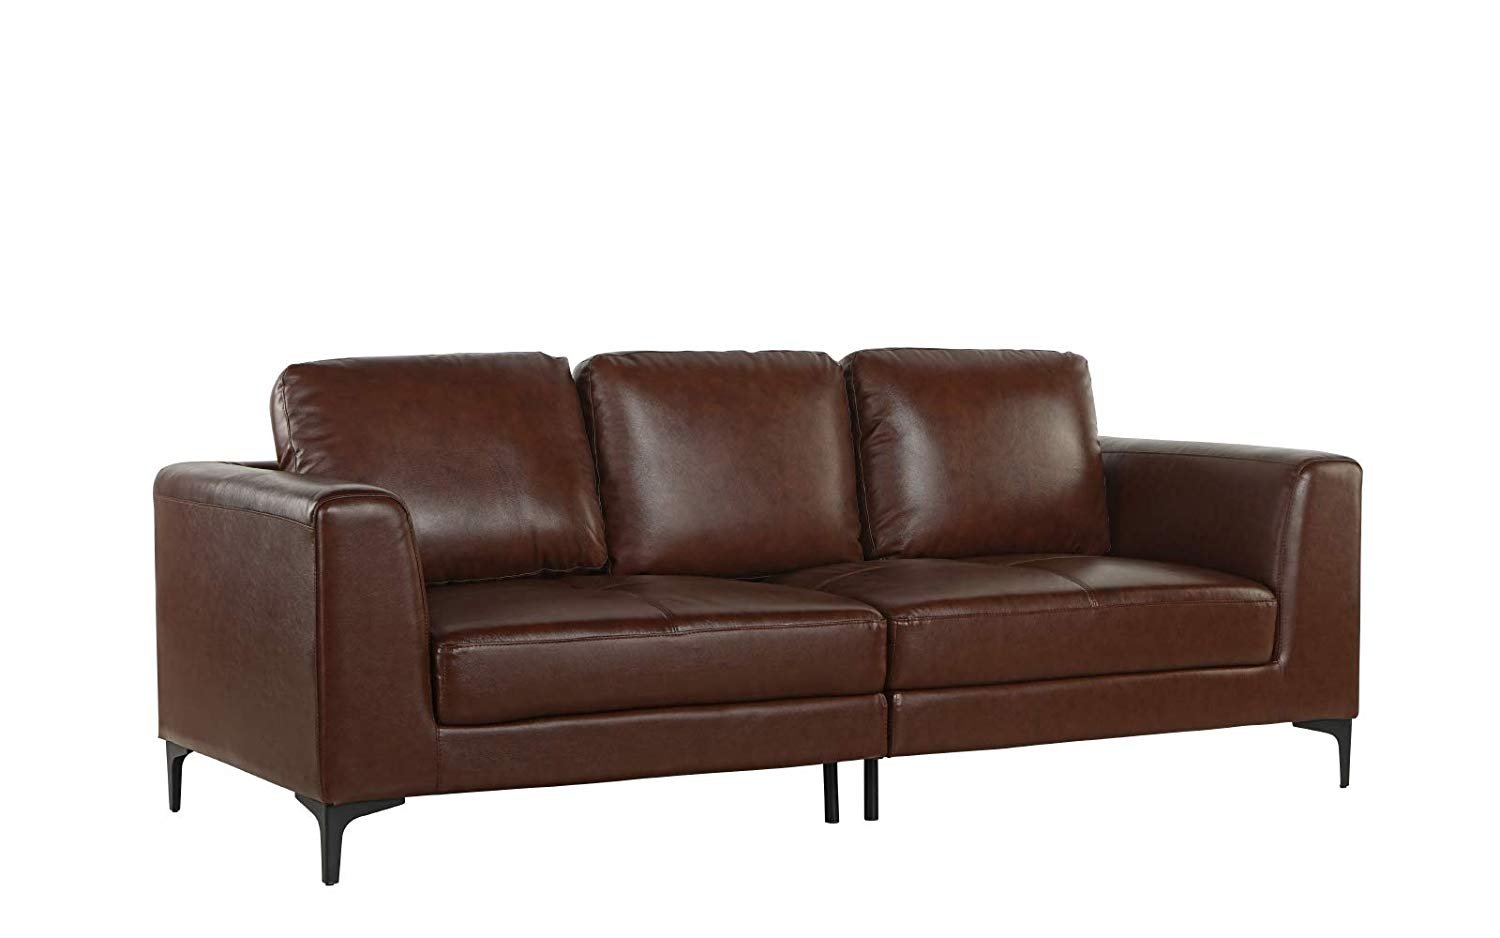 Details About Mid Century Modern Leather Fabric 3 Seat Sofa Couch 81 1 W Inches Dark Brown